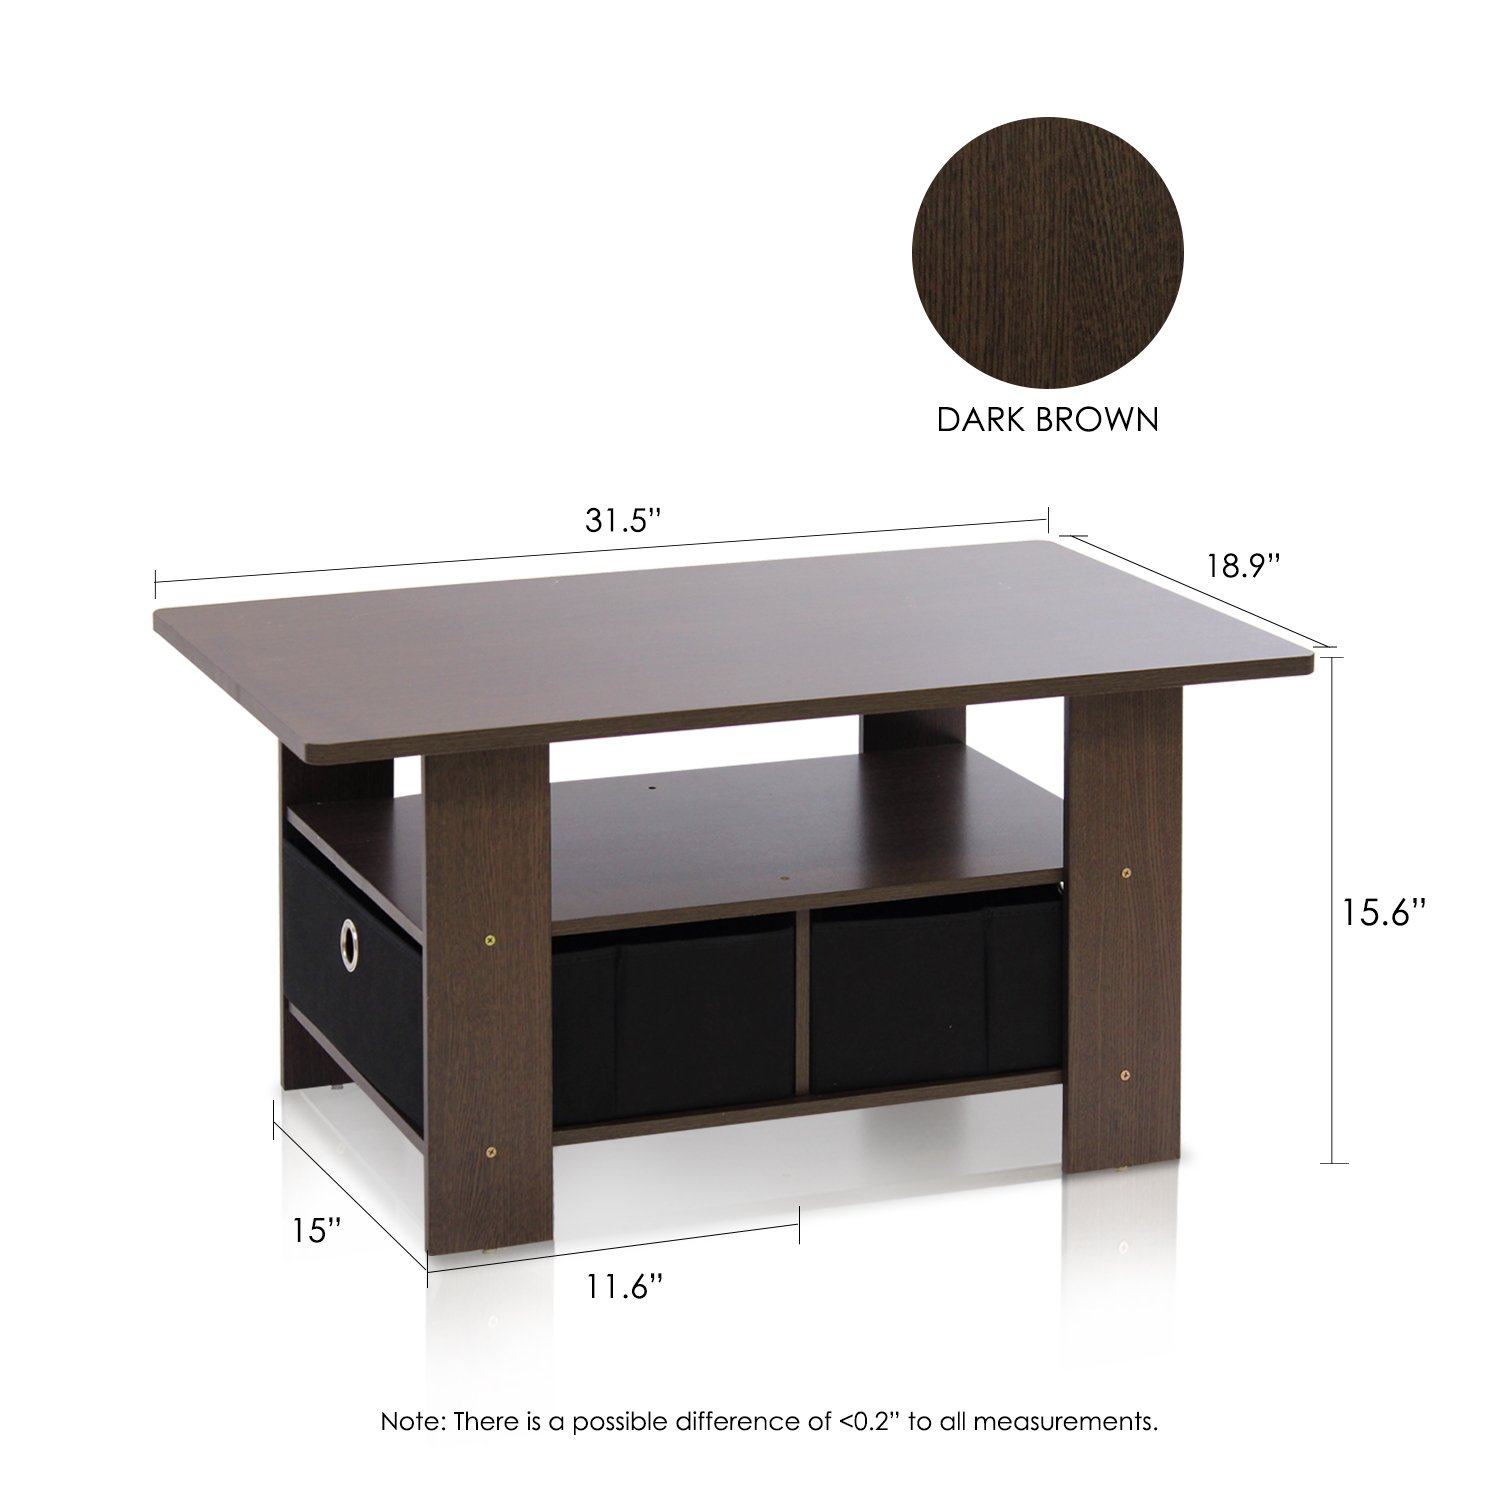 Amazon Furinno DBR BK Coffee Table with Bins Dark Brown